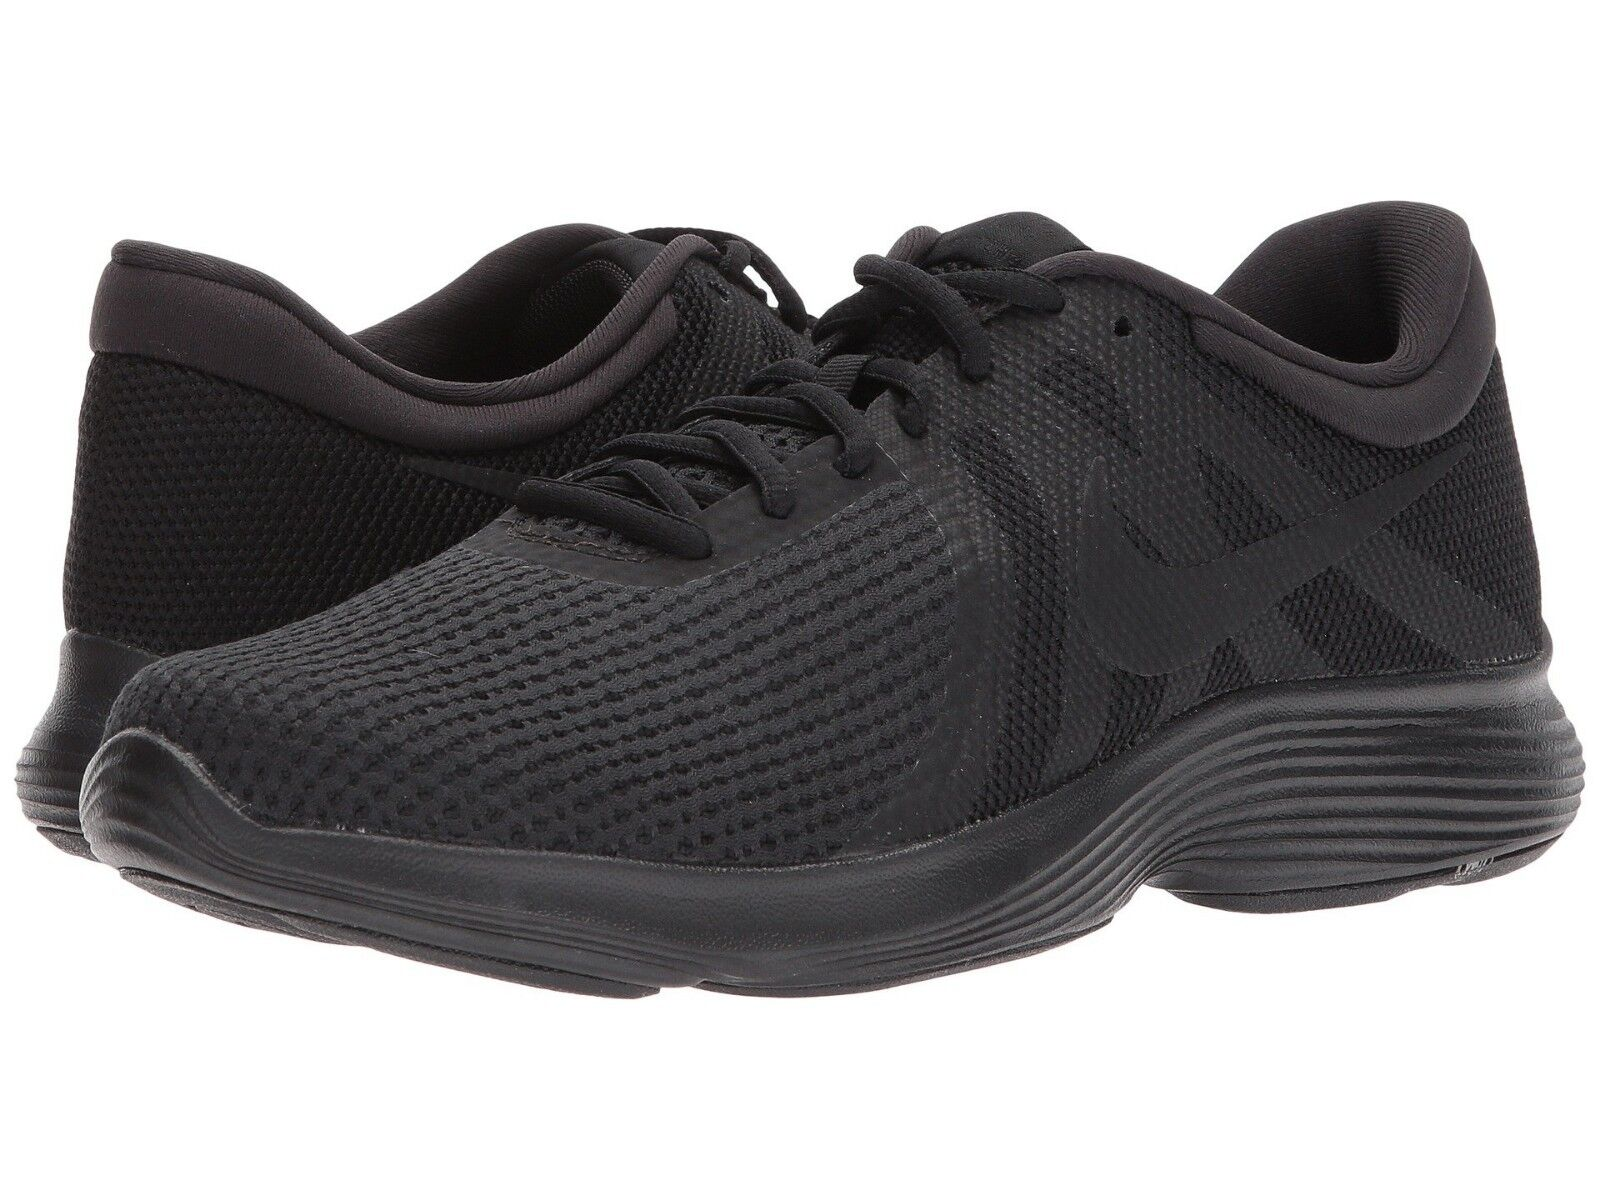 promo code 406b3 fe01c Nike Revolution 4 MENS Black 908988 908988 908988 002 Running Shoes 9 - 13  556b05